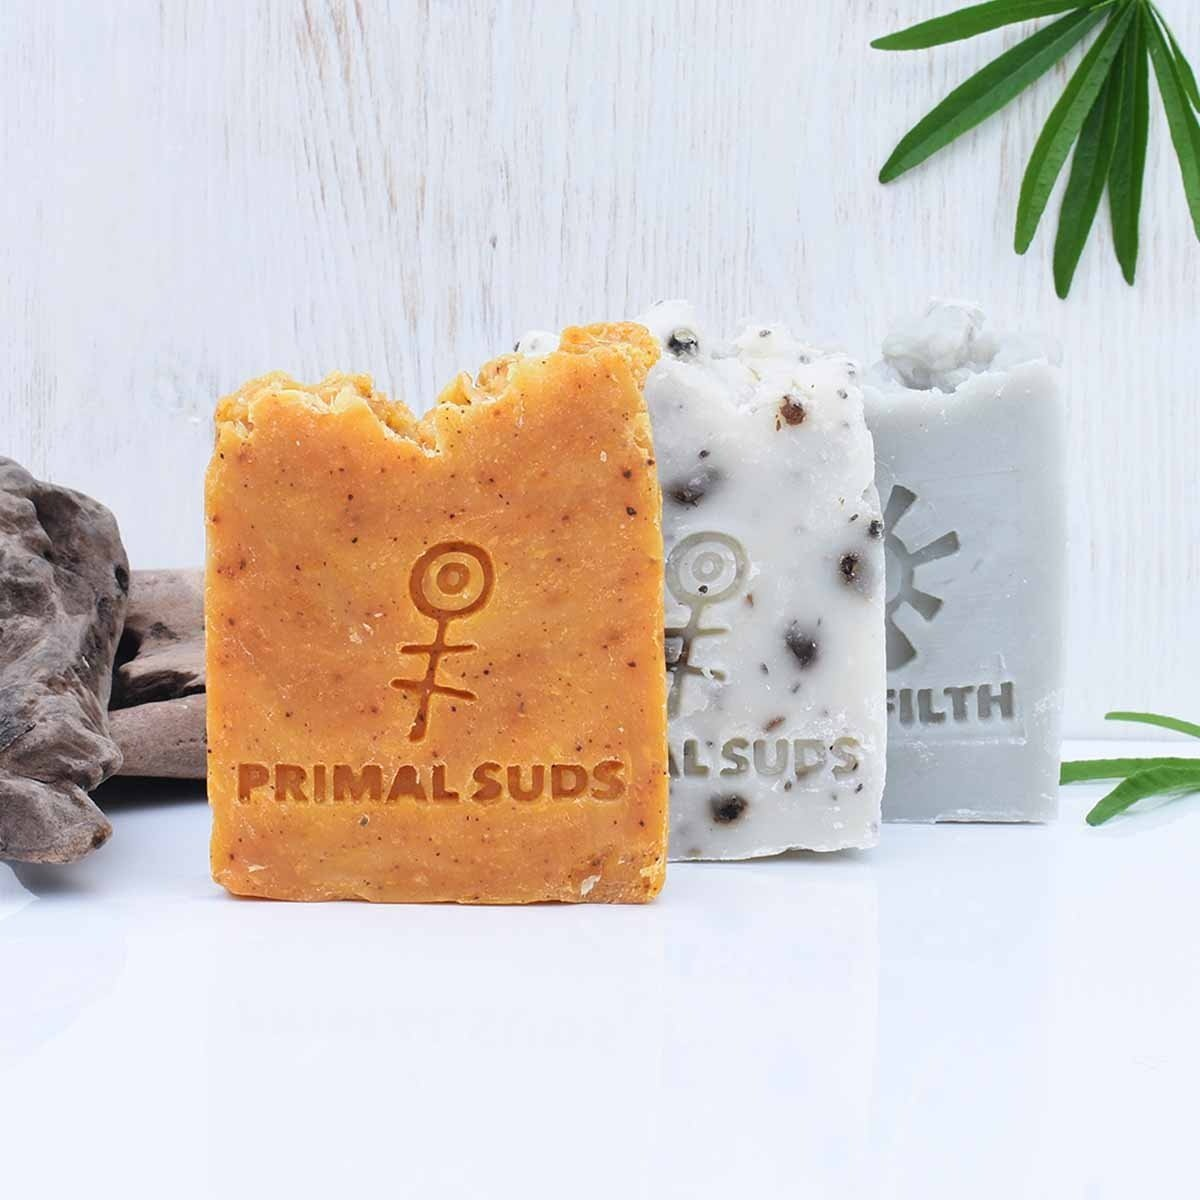 vegan soap bars collection primal suds background